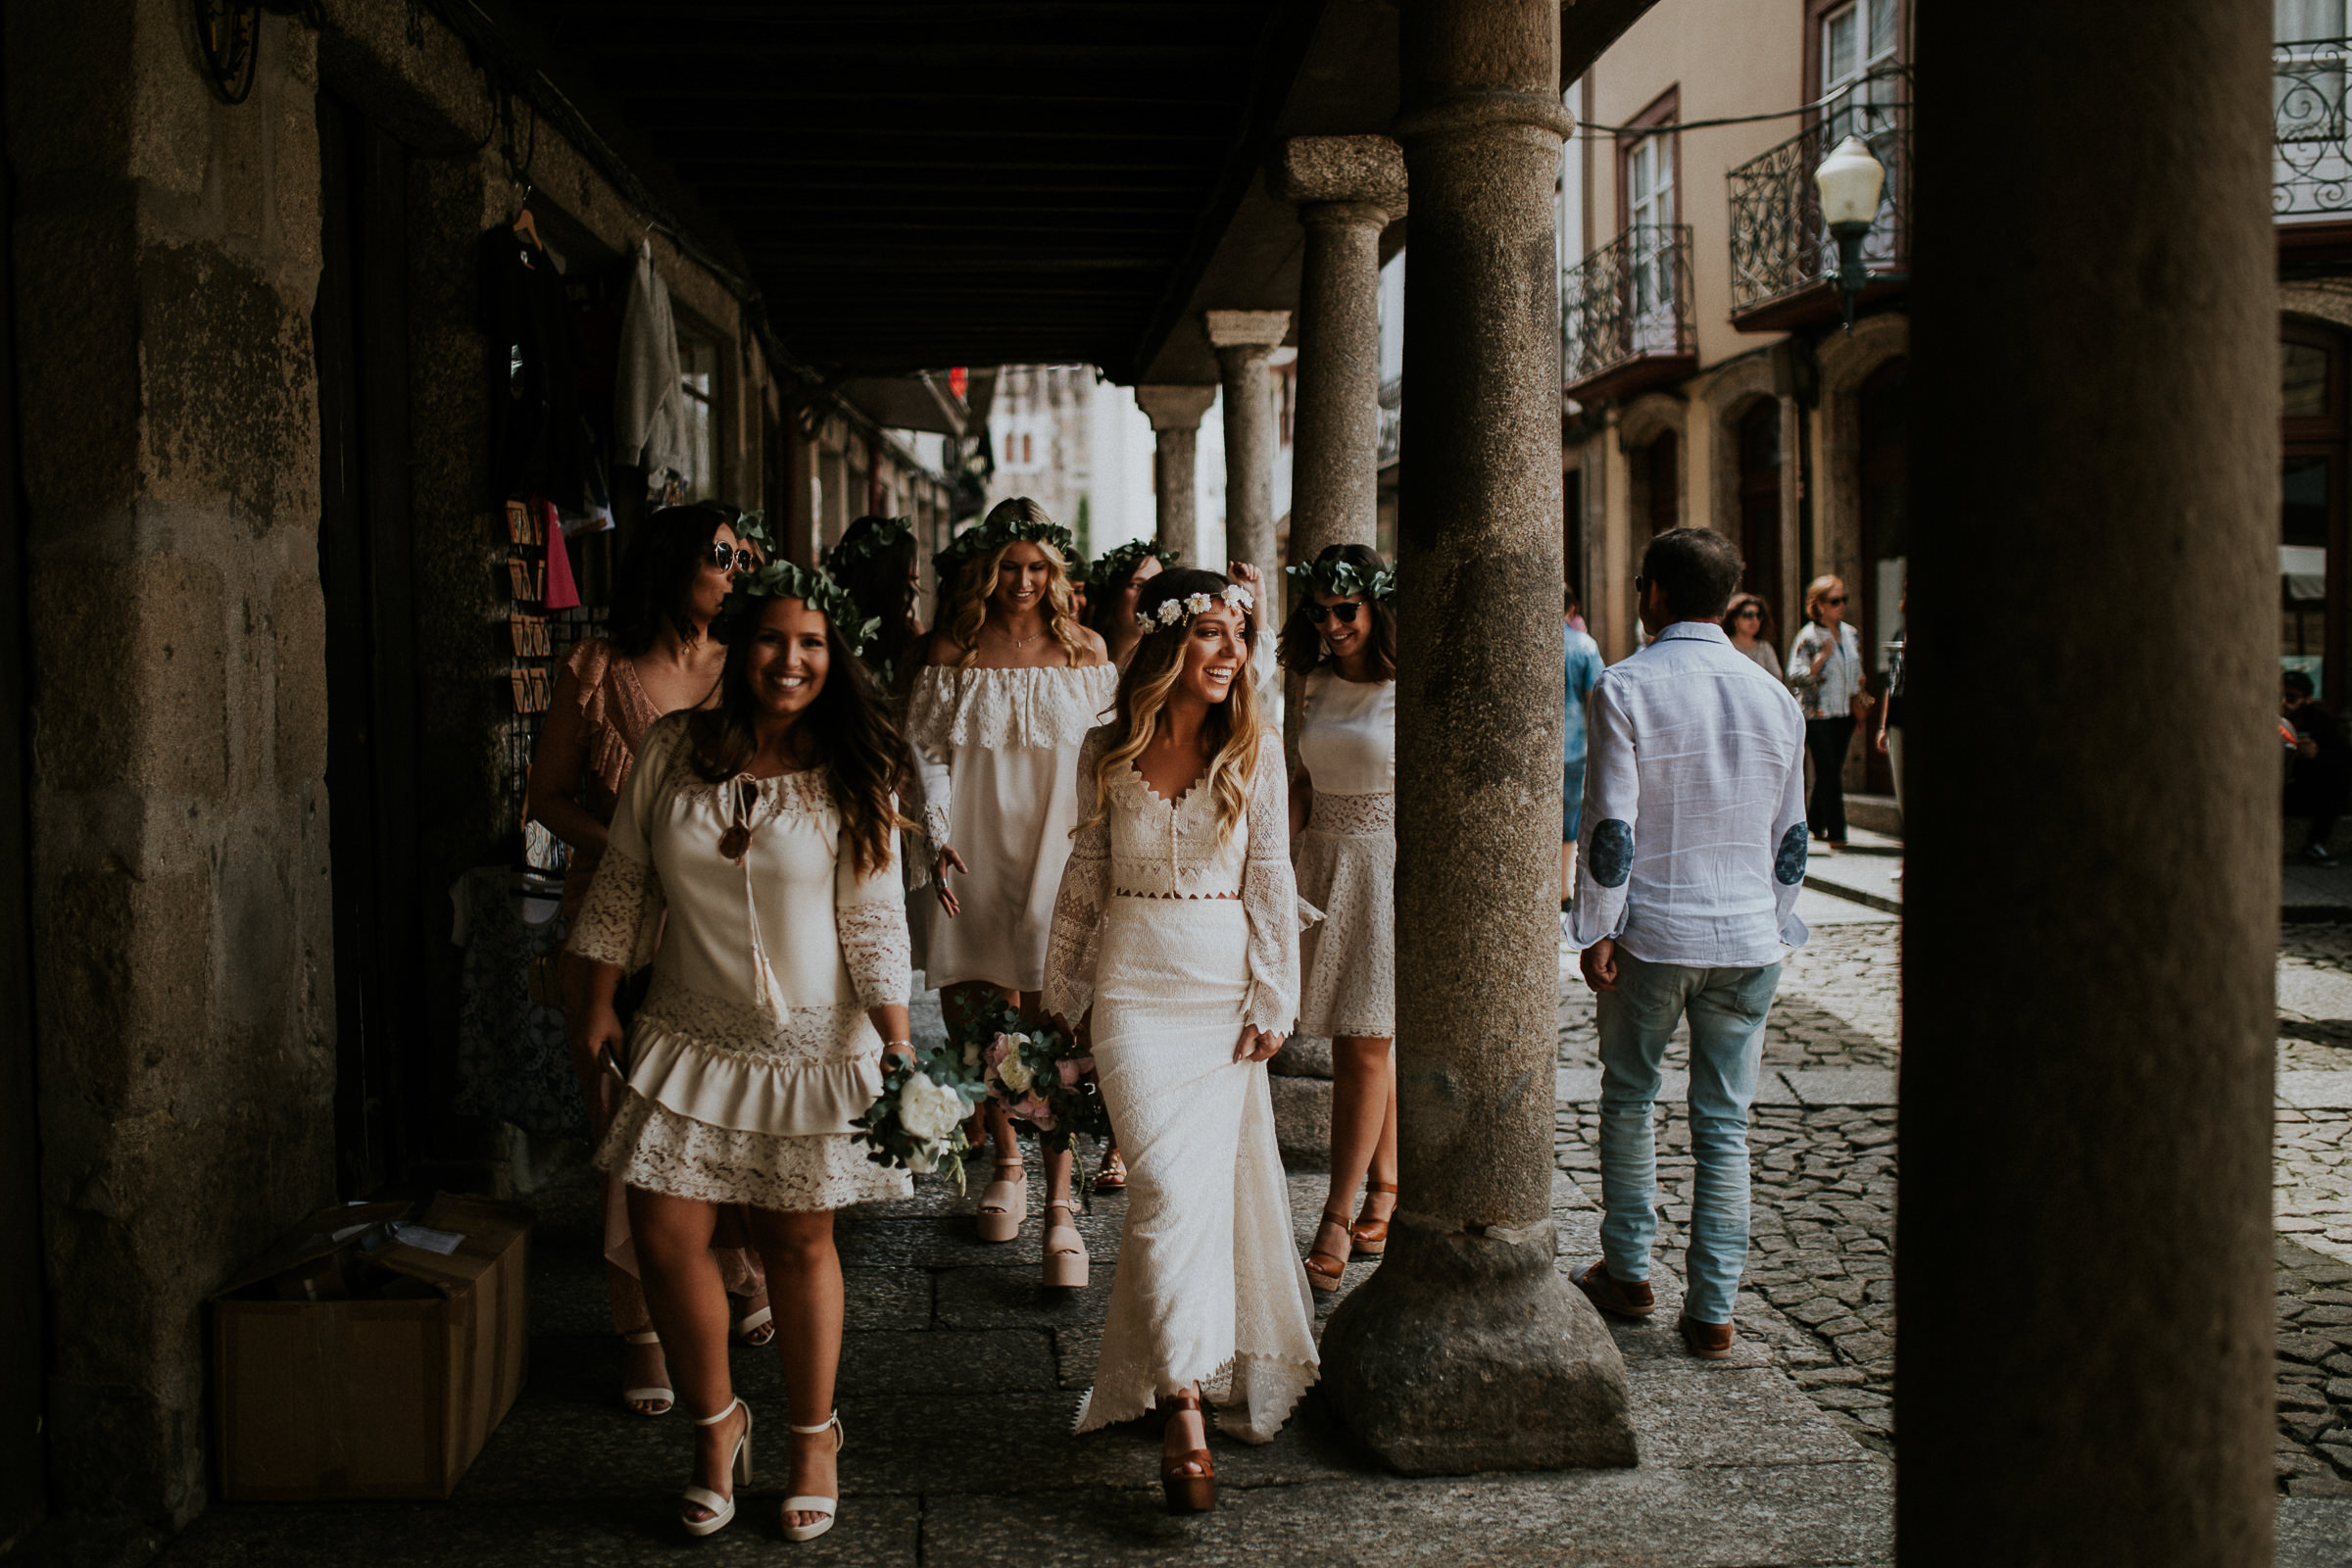 boho chic bride and bridesmaids walking in the city streets